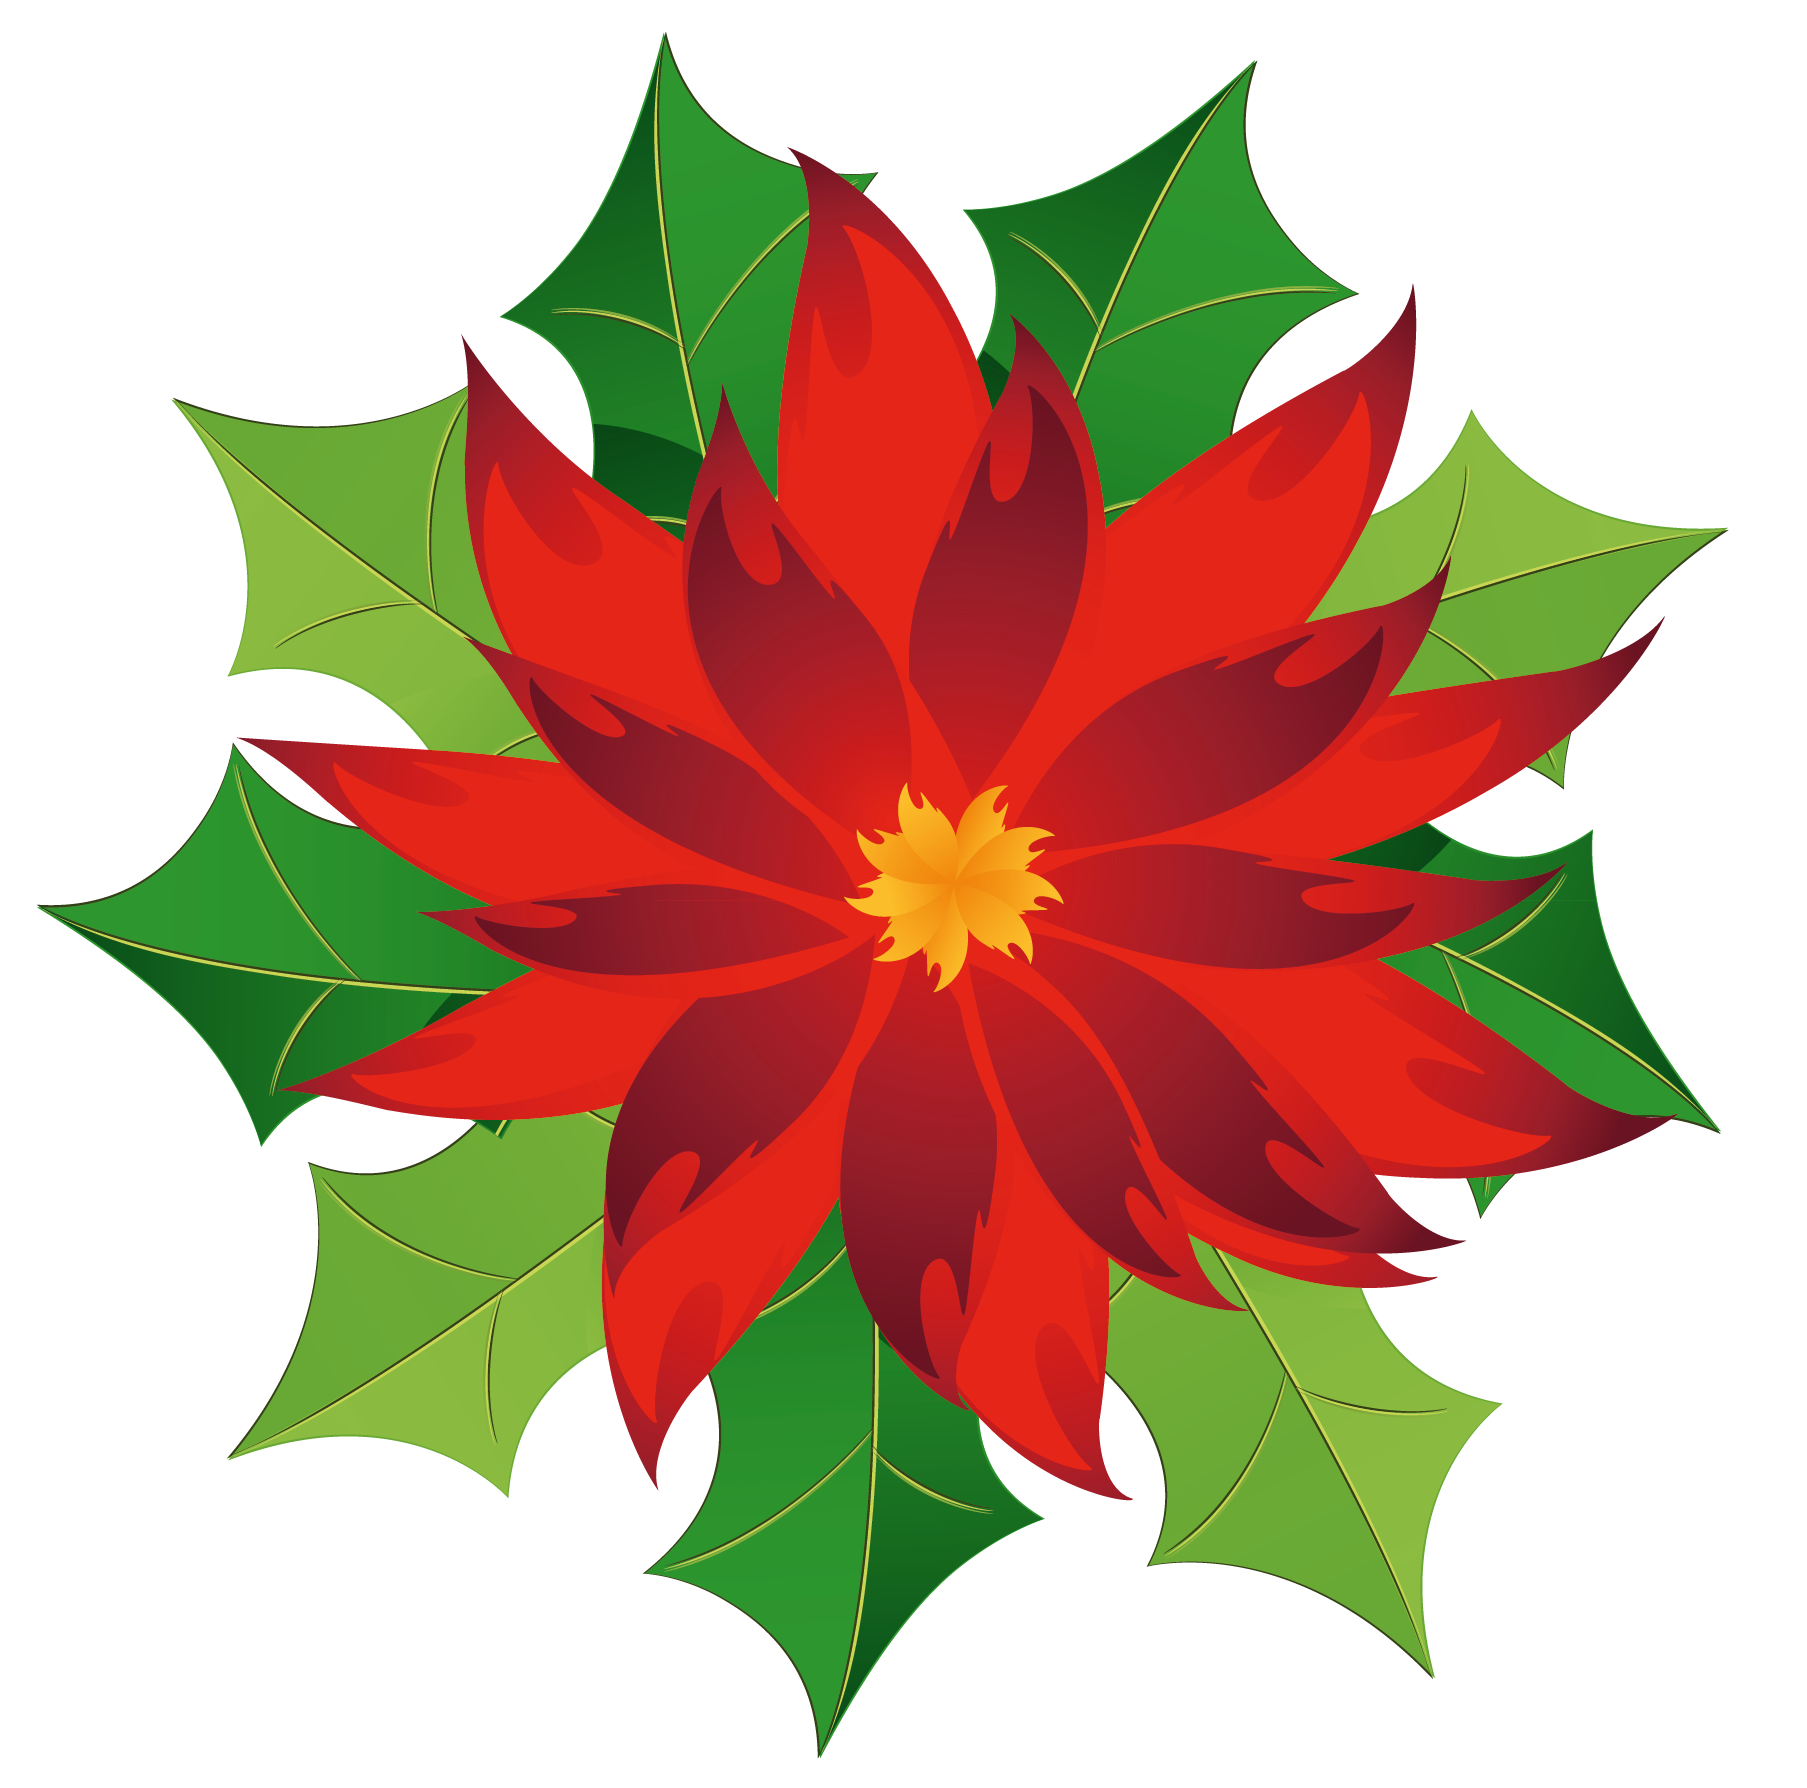 Poinsettia clipart Full View Christmas Yopriceville Gallery